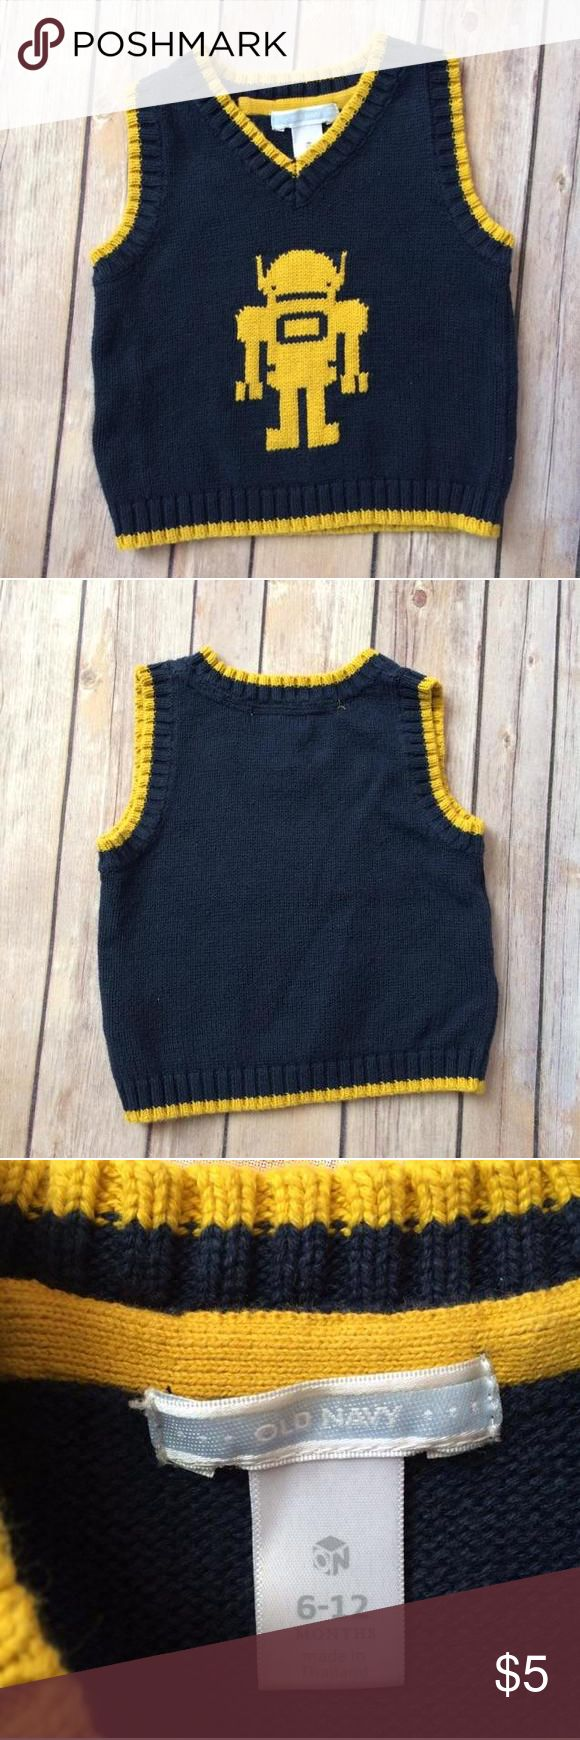 Old Navy Sweater Vest Navy blue and yellow sweater vest with a robot on the front. Old Navy Shirts & Tops Sweaters